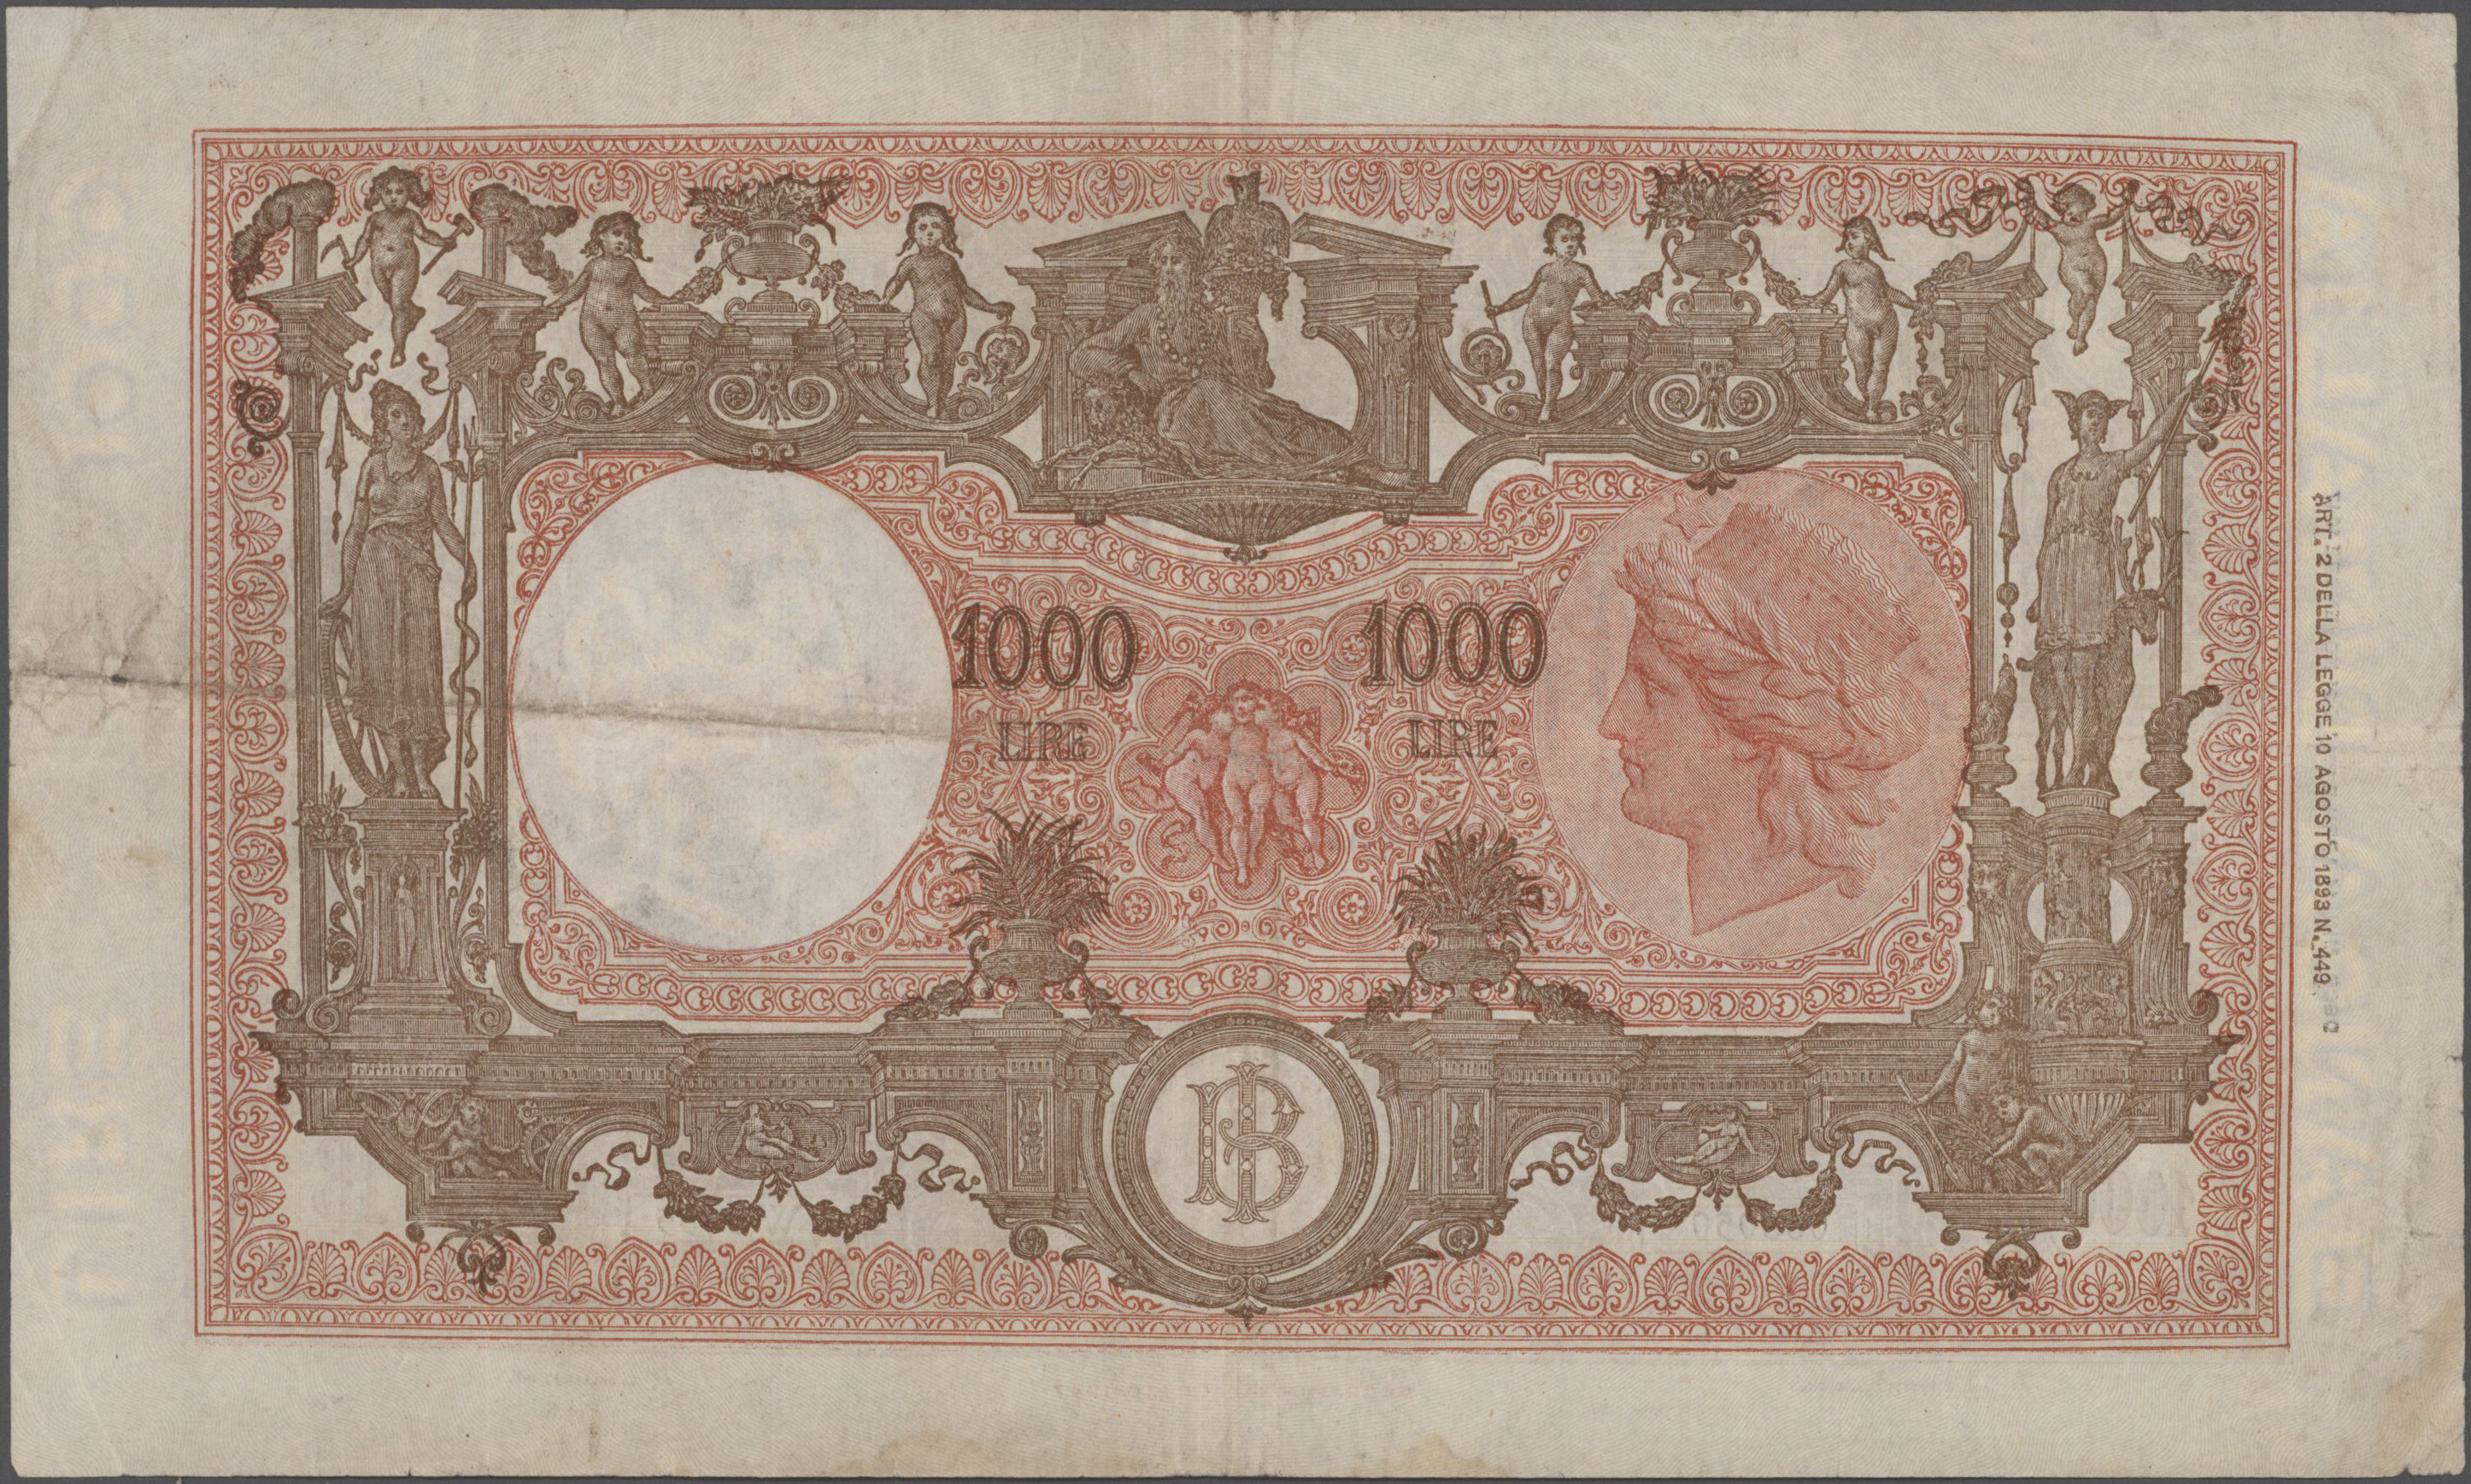 Lot 00456 - Italy / Italien | Banknoten  -  Auktionshaus Christoph Gärtner GmbH & Co. KG Sale #48 The Banknotes